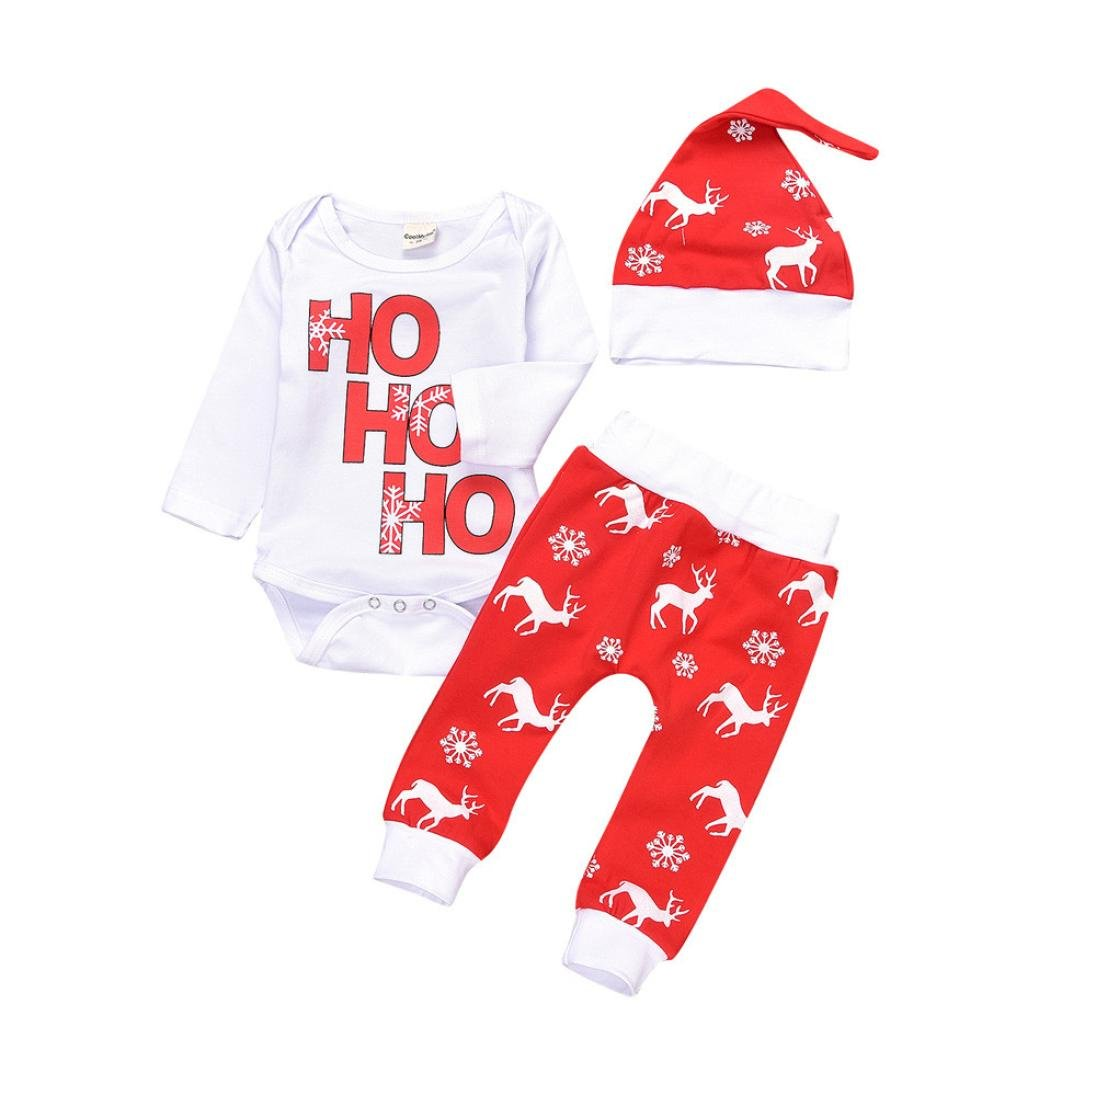 Gotd Toddler Infant Baby Girl Boy Clothes Winter Long Sleeve Romper Tops+ Deer Pants Christmas Outfits (0-6 Months, Red) Goodtrade8